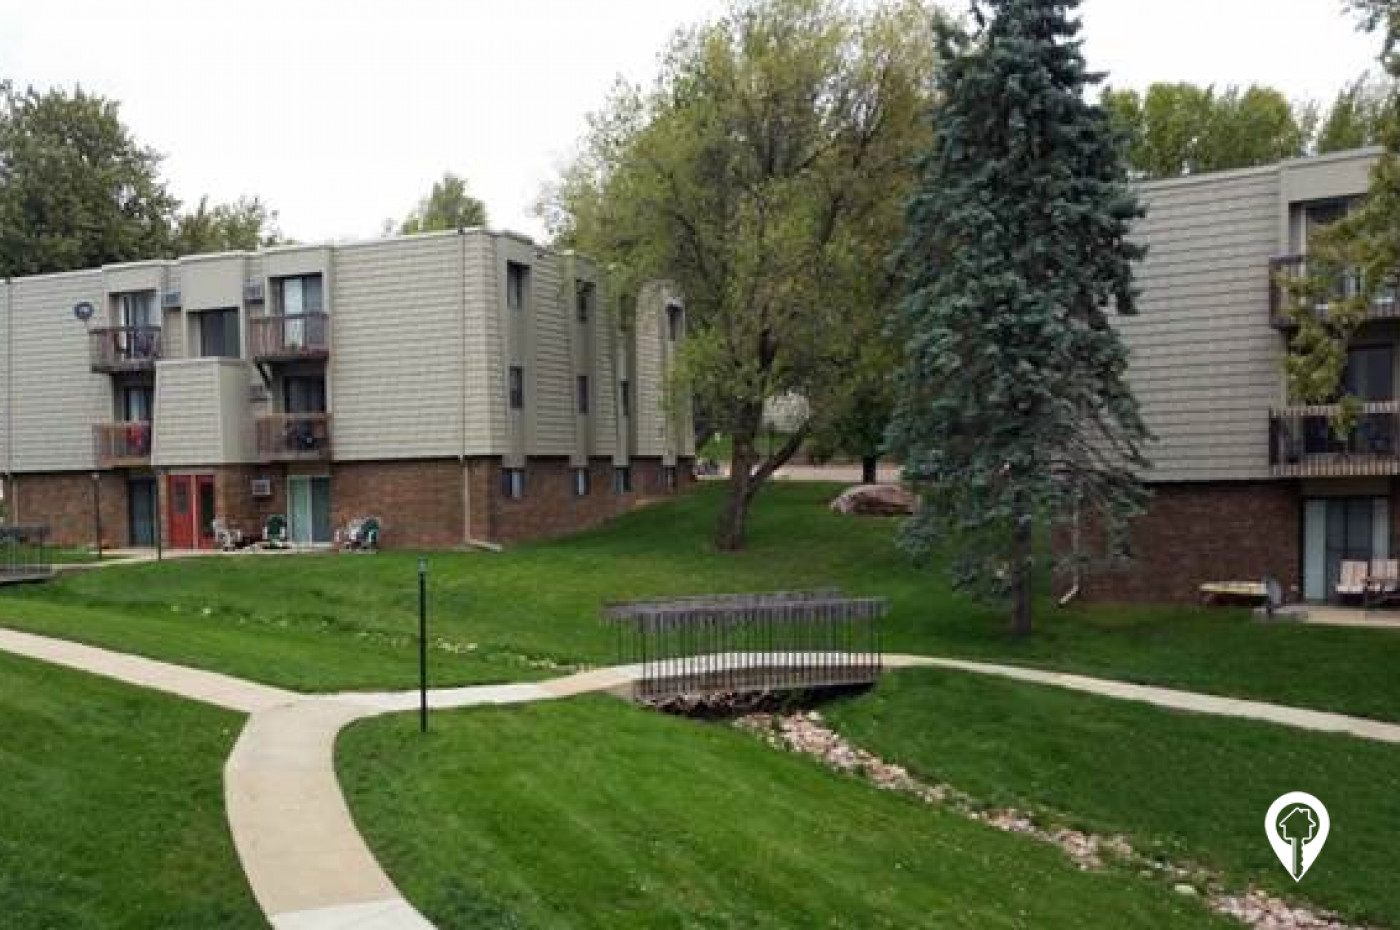 Willow Wood Apartments